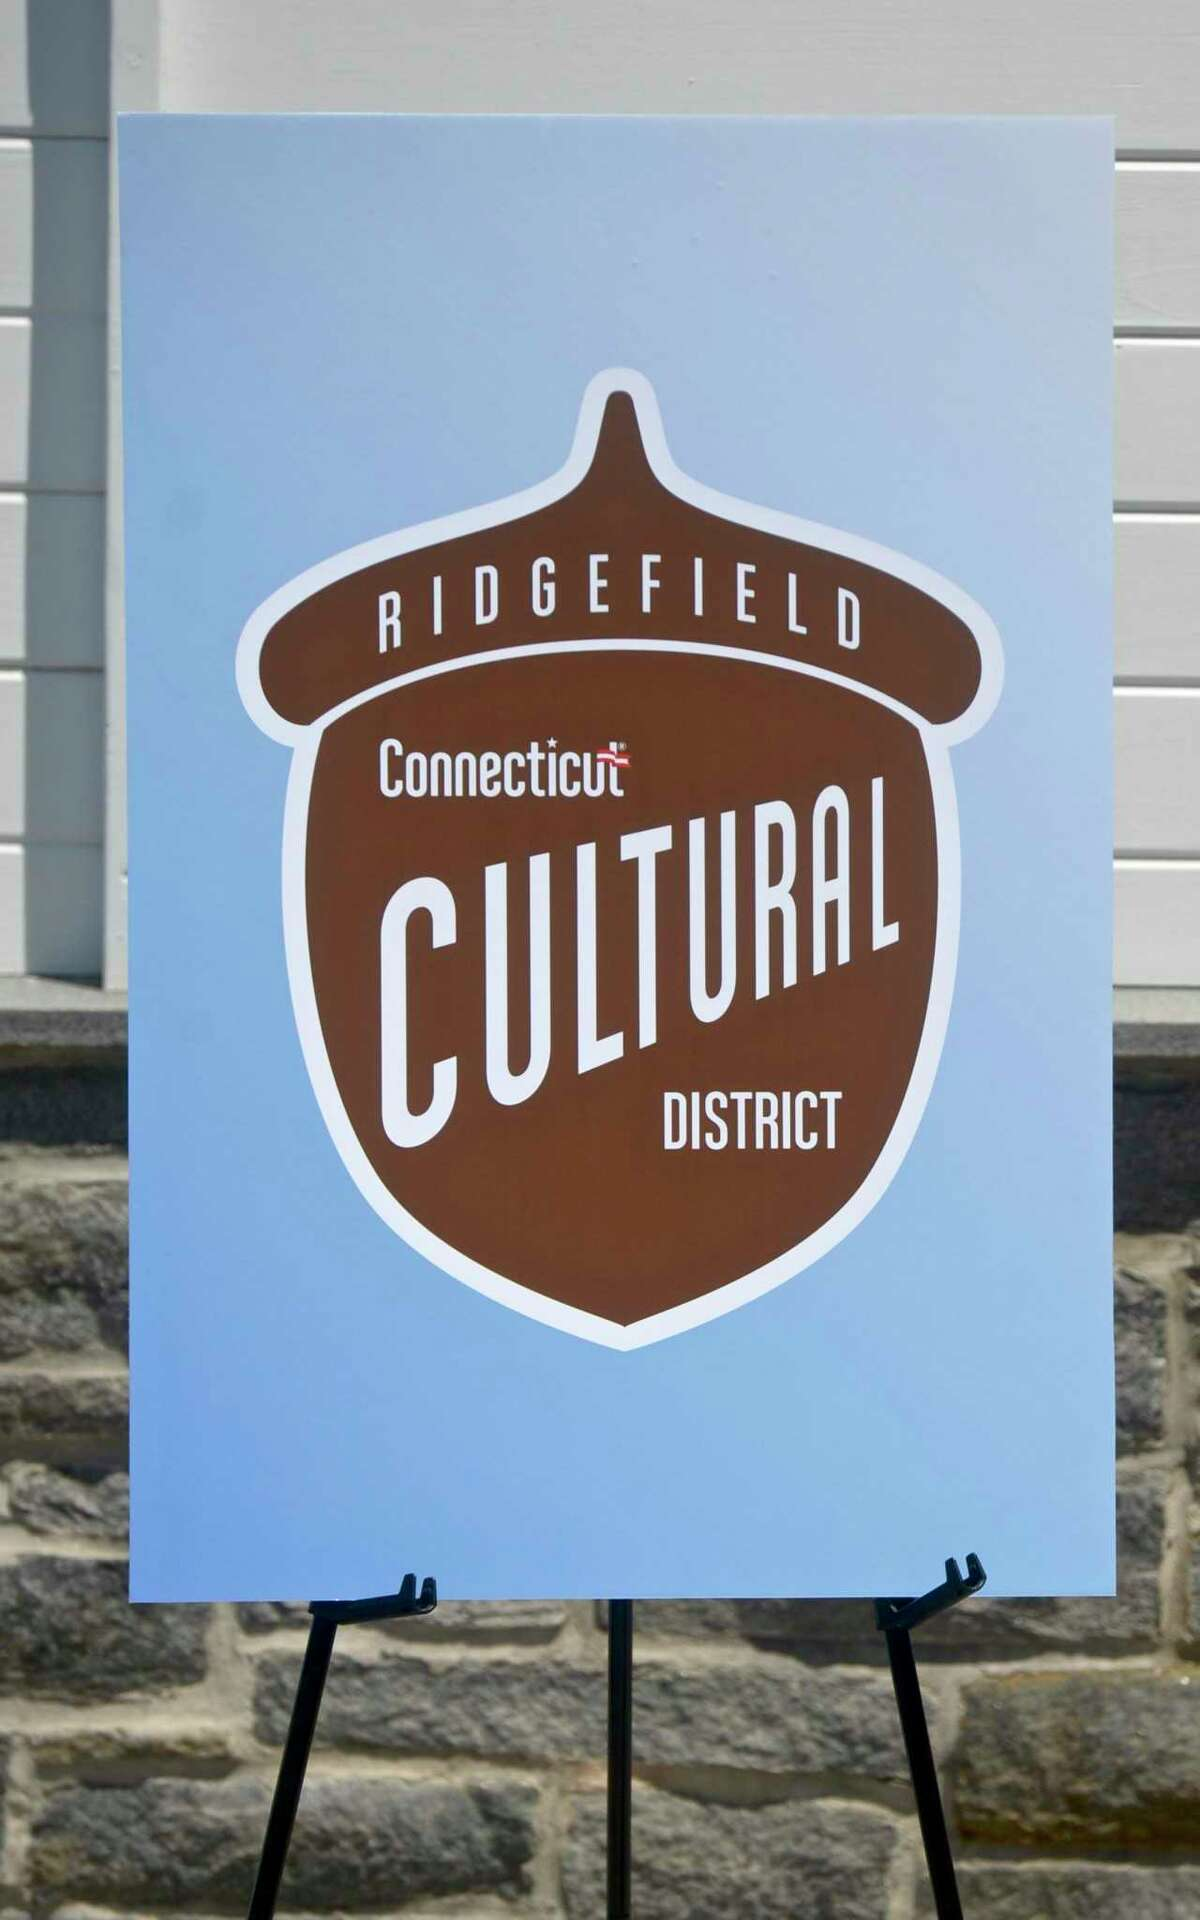 Ridgefield's Economic and Community Development Commission Chairman Geoffrey Morris unveiled the logo for the district's signage, which includes a picture of an acorn - a nod to the Charter Oak Cultural Center in Hartford.